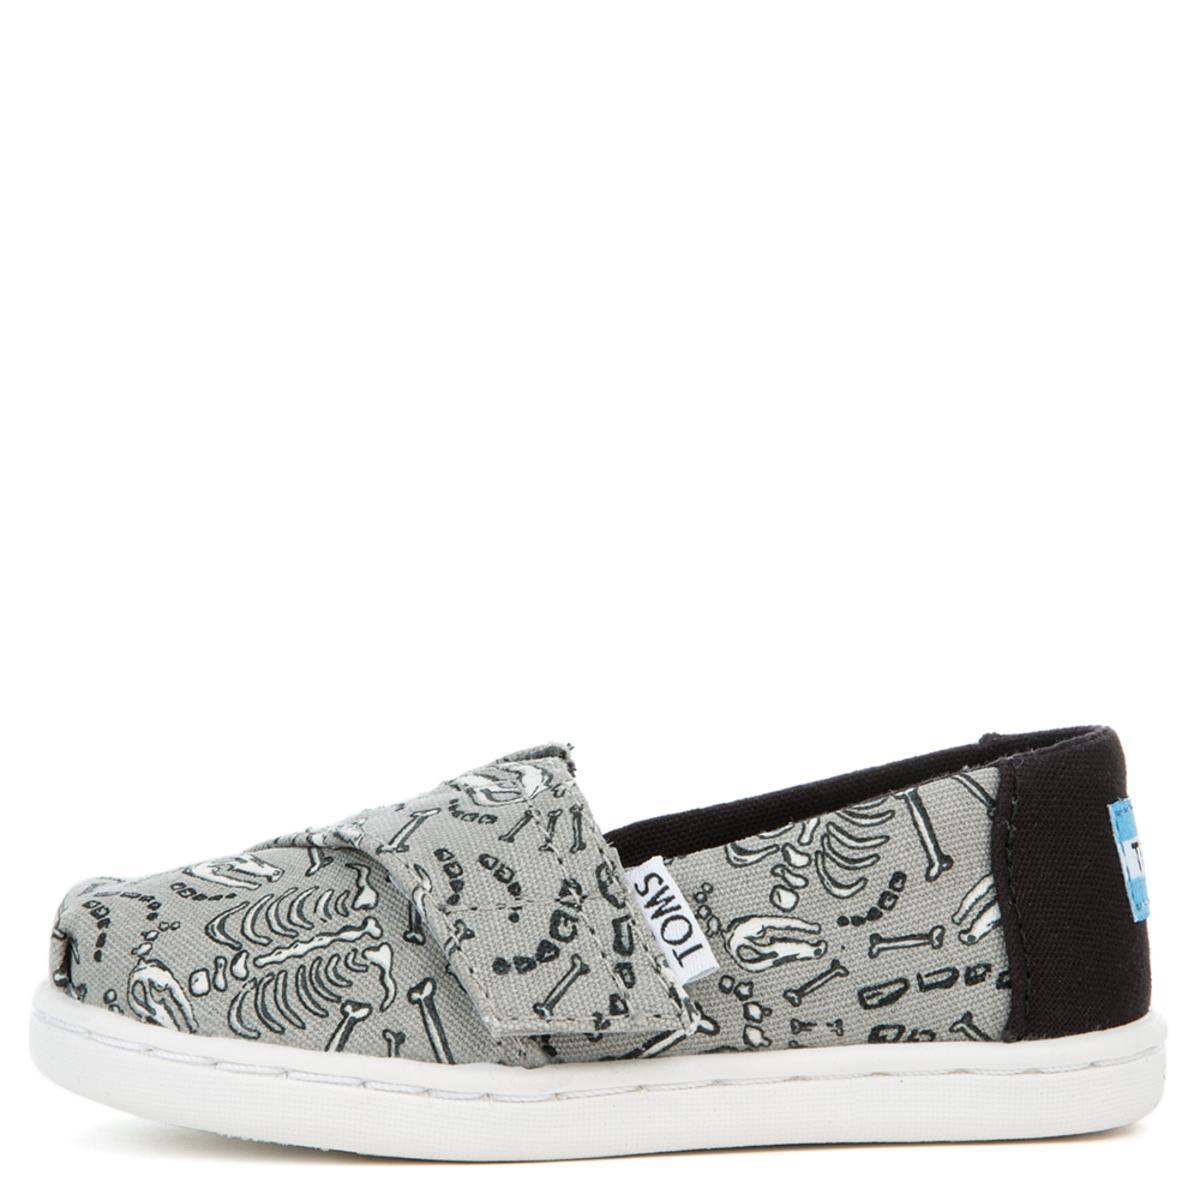 Tiny Toms Classic Dinosaur Bones Glow in the Dark Drizzle Grey Flats